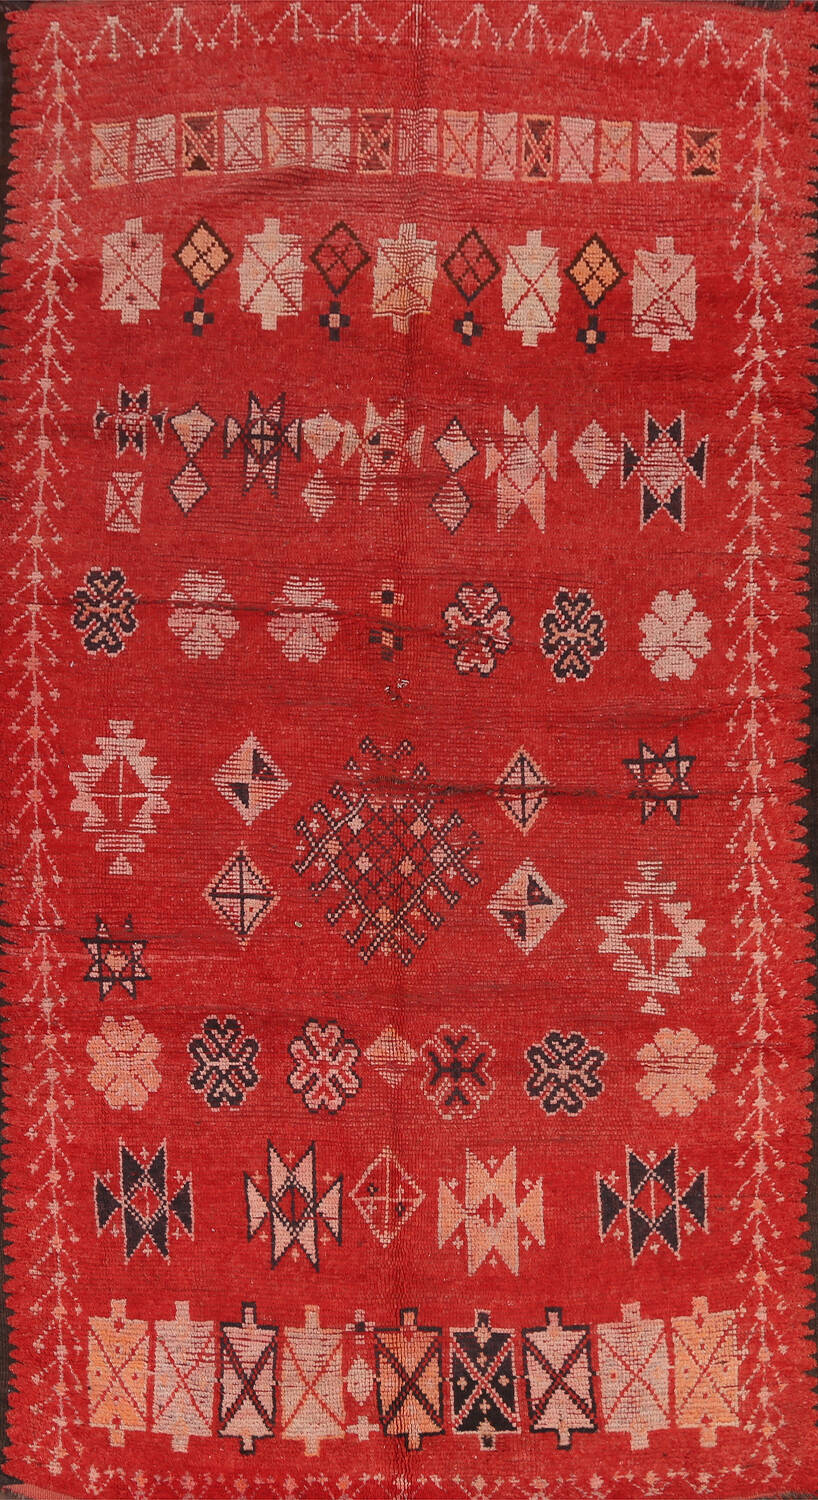 Antique Moroccan Wool Rug 5x10 image 1